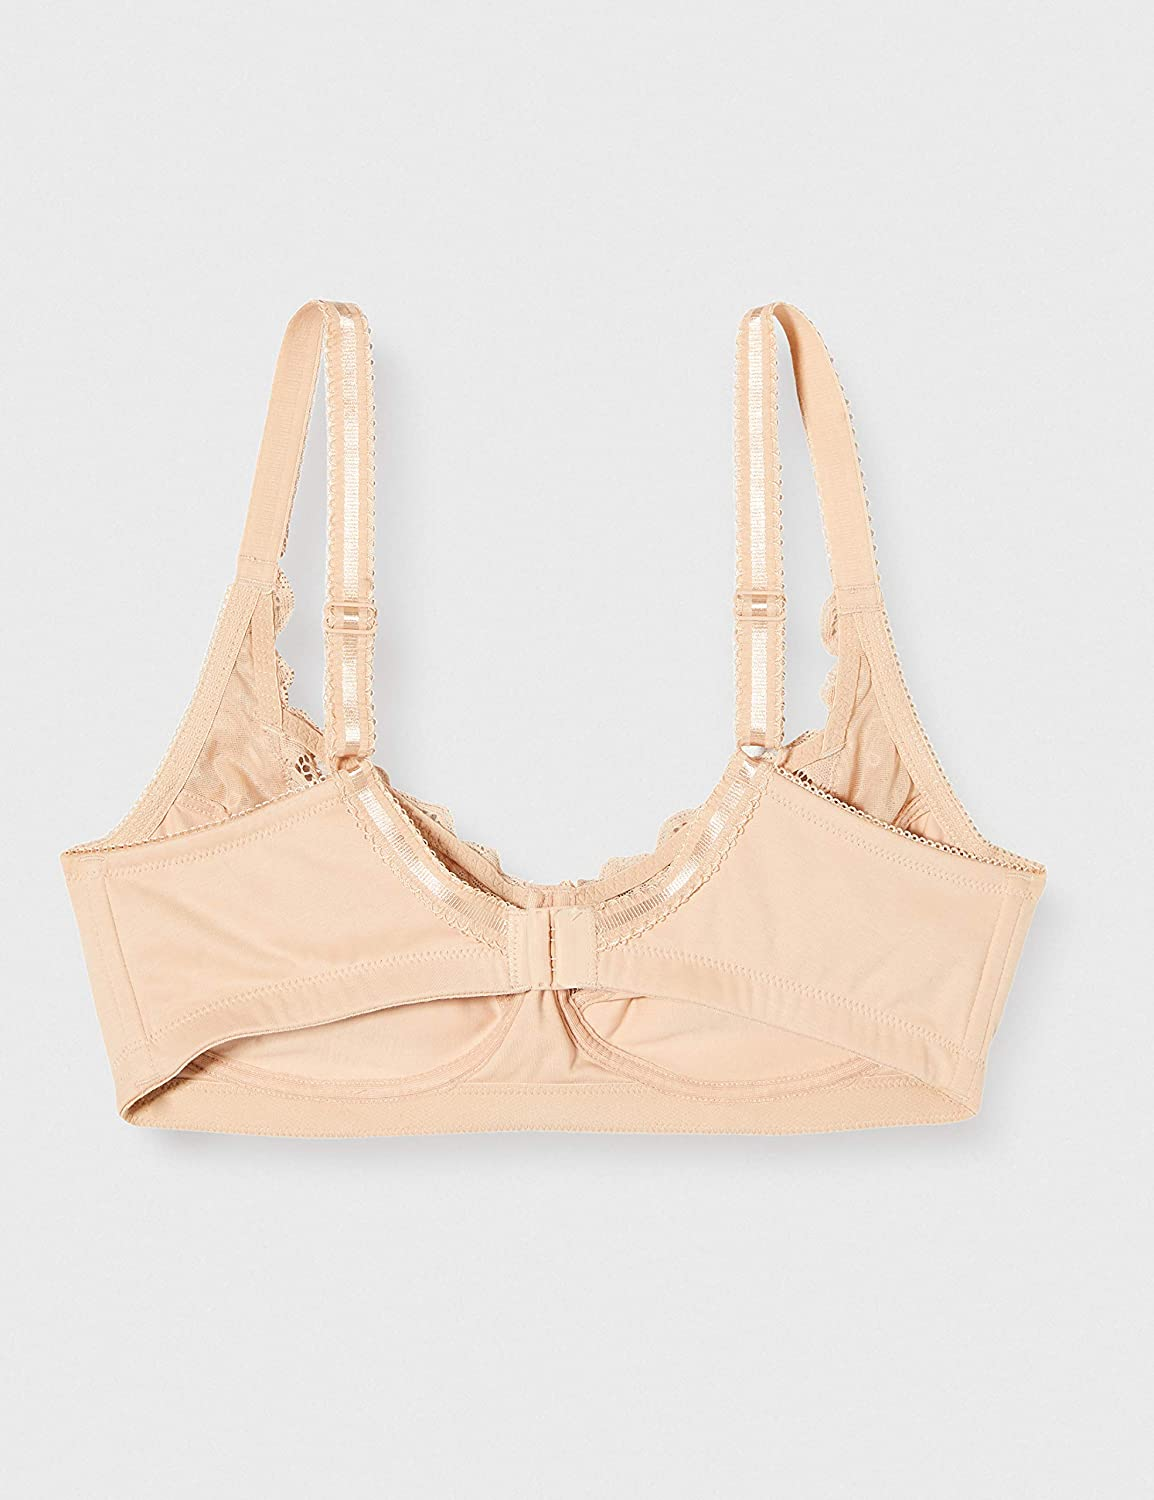 Bestform 11440-104 Womens Cocoon Nude Lace Non-Wired Full Cup Bra